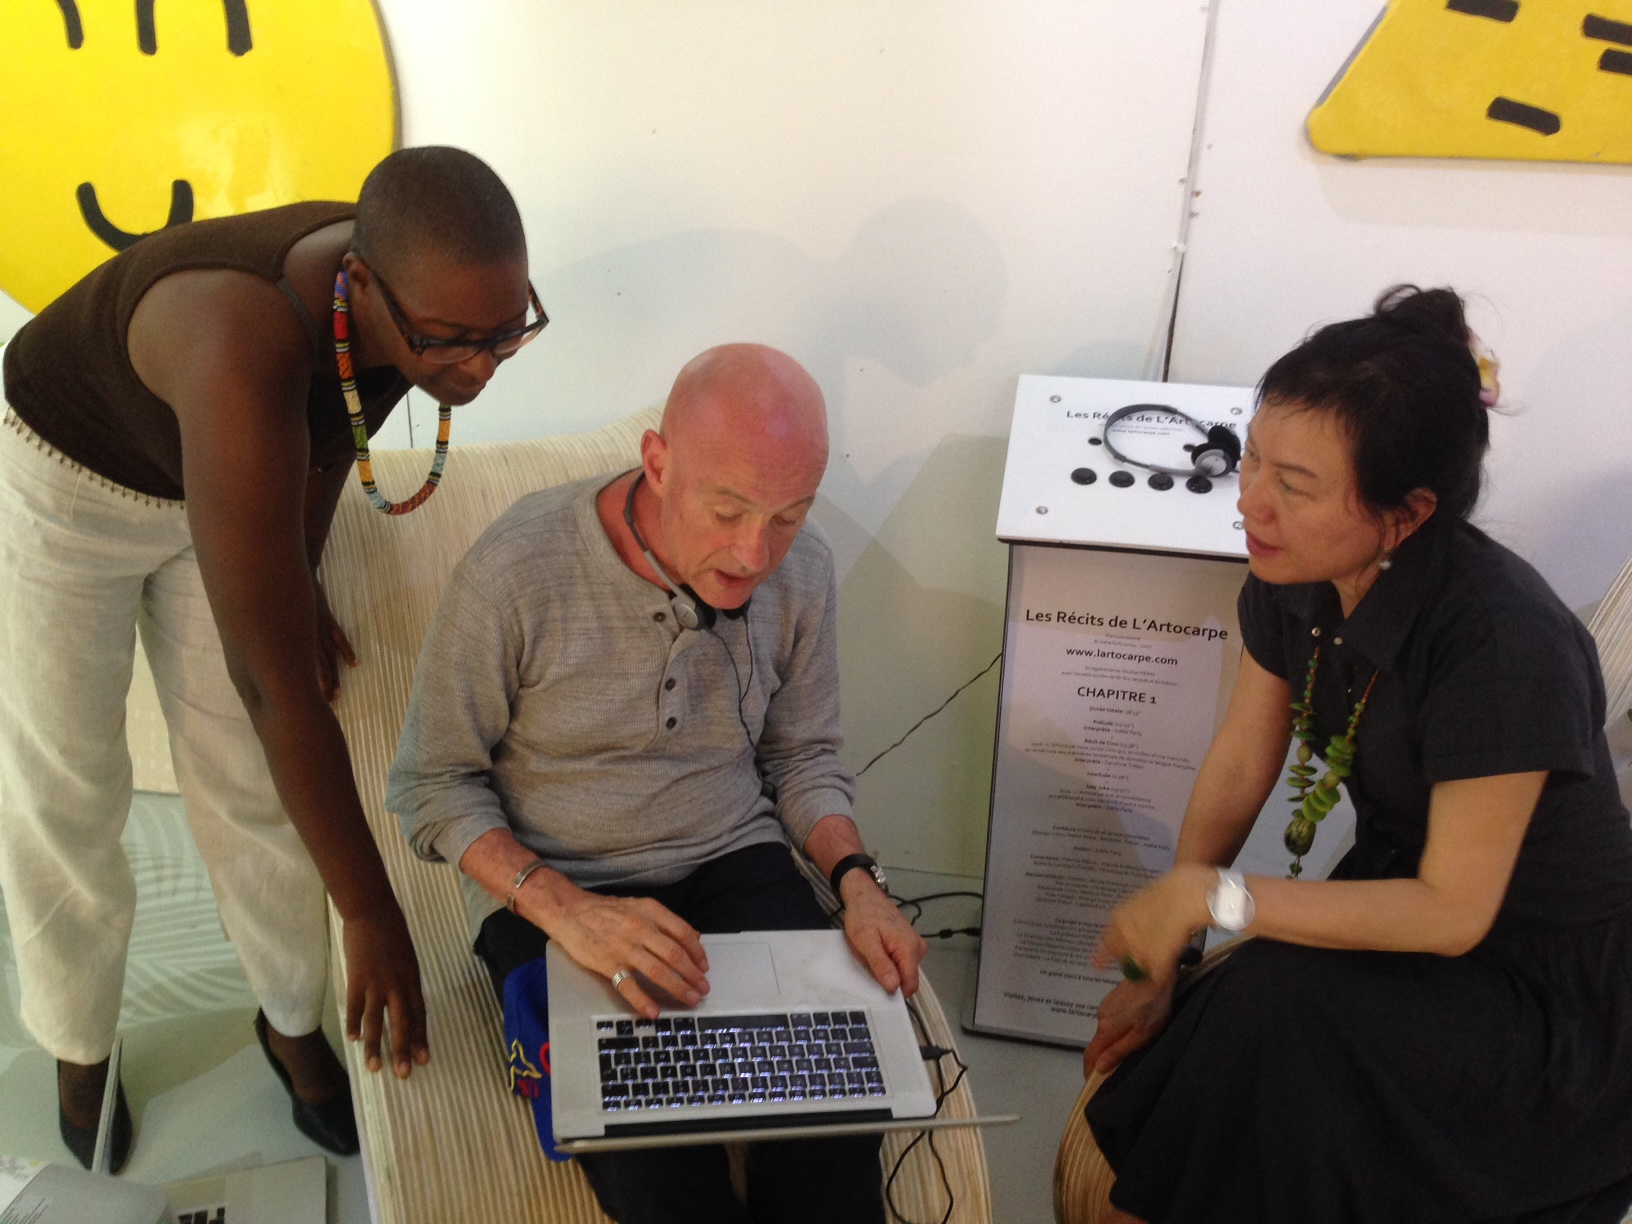 With André Rouillé, ParisART founder and curator Louise Tsai